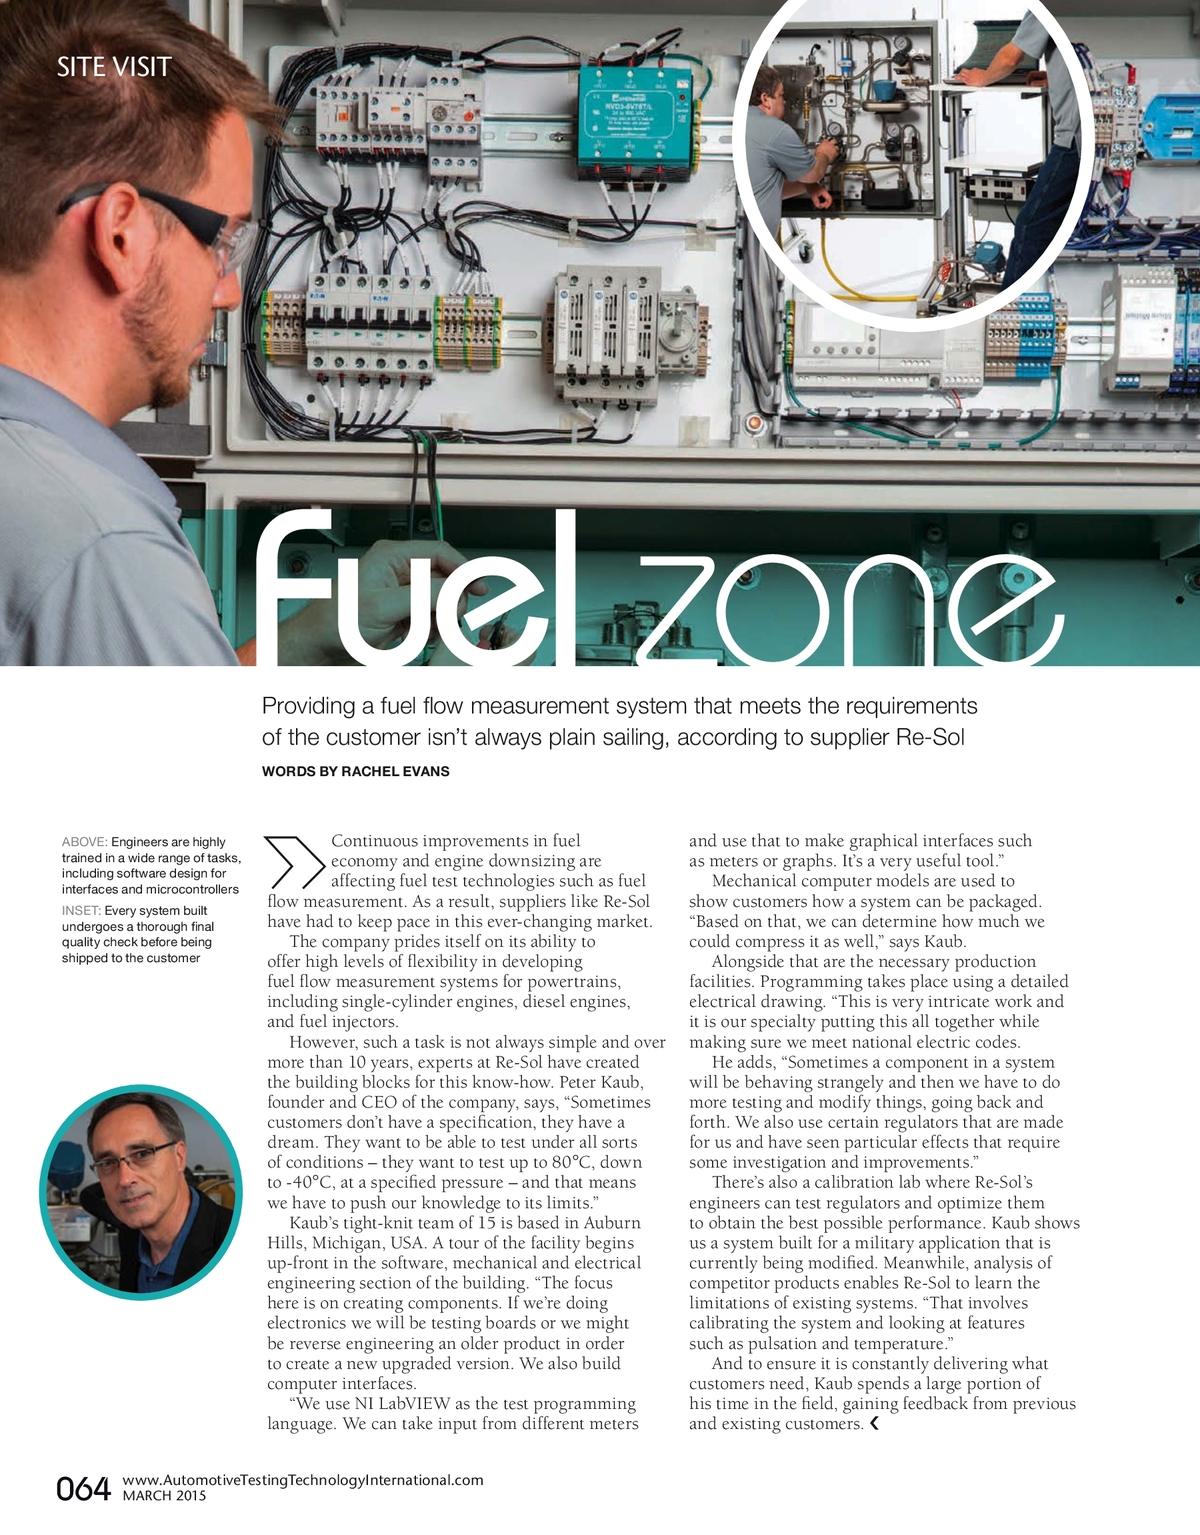 fuel-zone-article